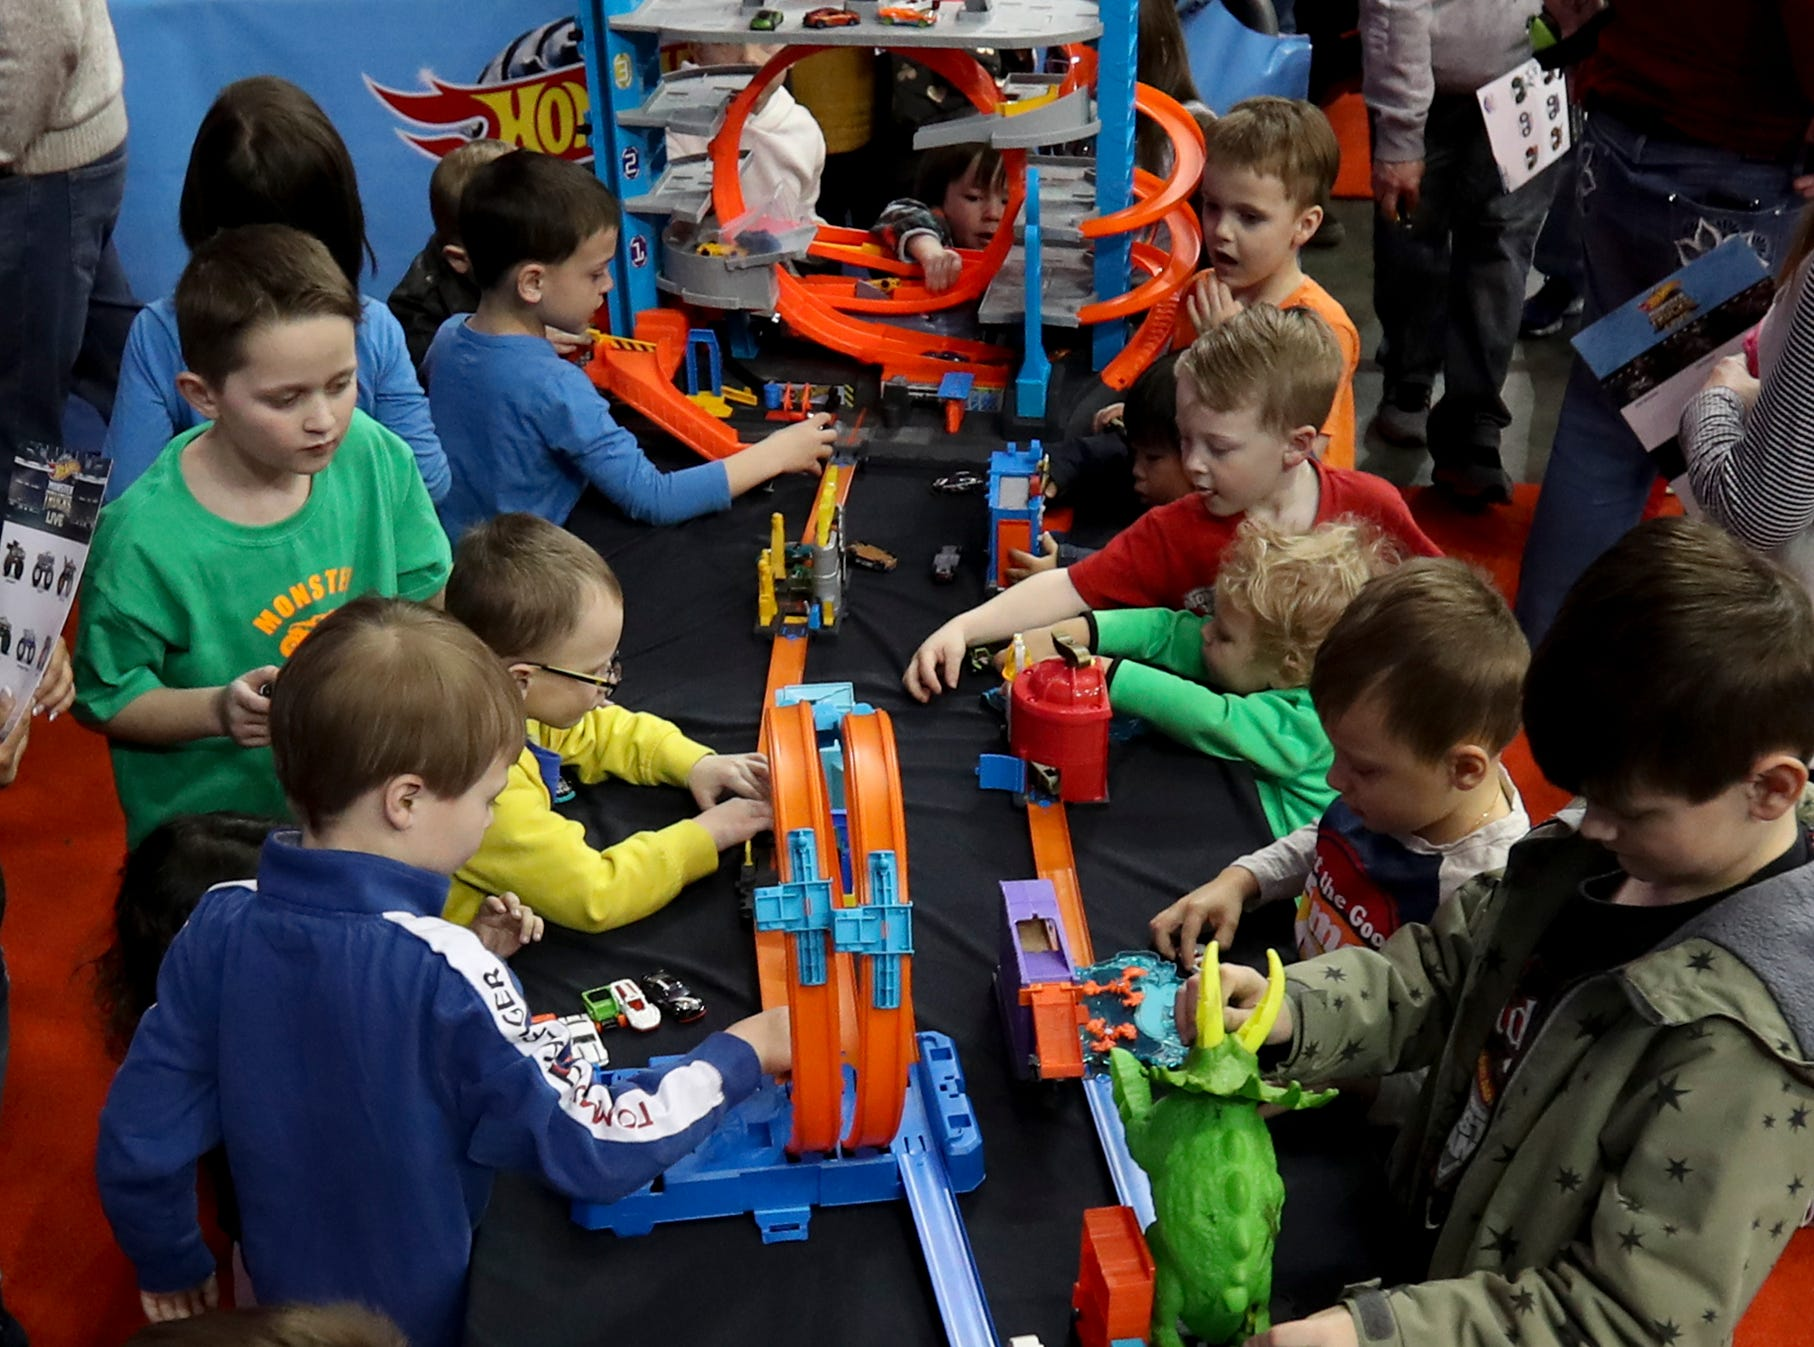 The Crash Zone Party let kids get some hands-on time with toys and the ability to get up close and personal with the trucks and their drivers before the Hot Wheels Monster Trucks show at the KFC Yum Center on March 16.